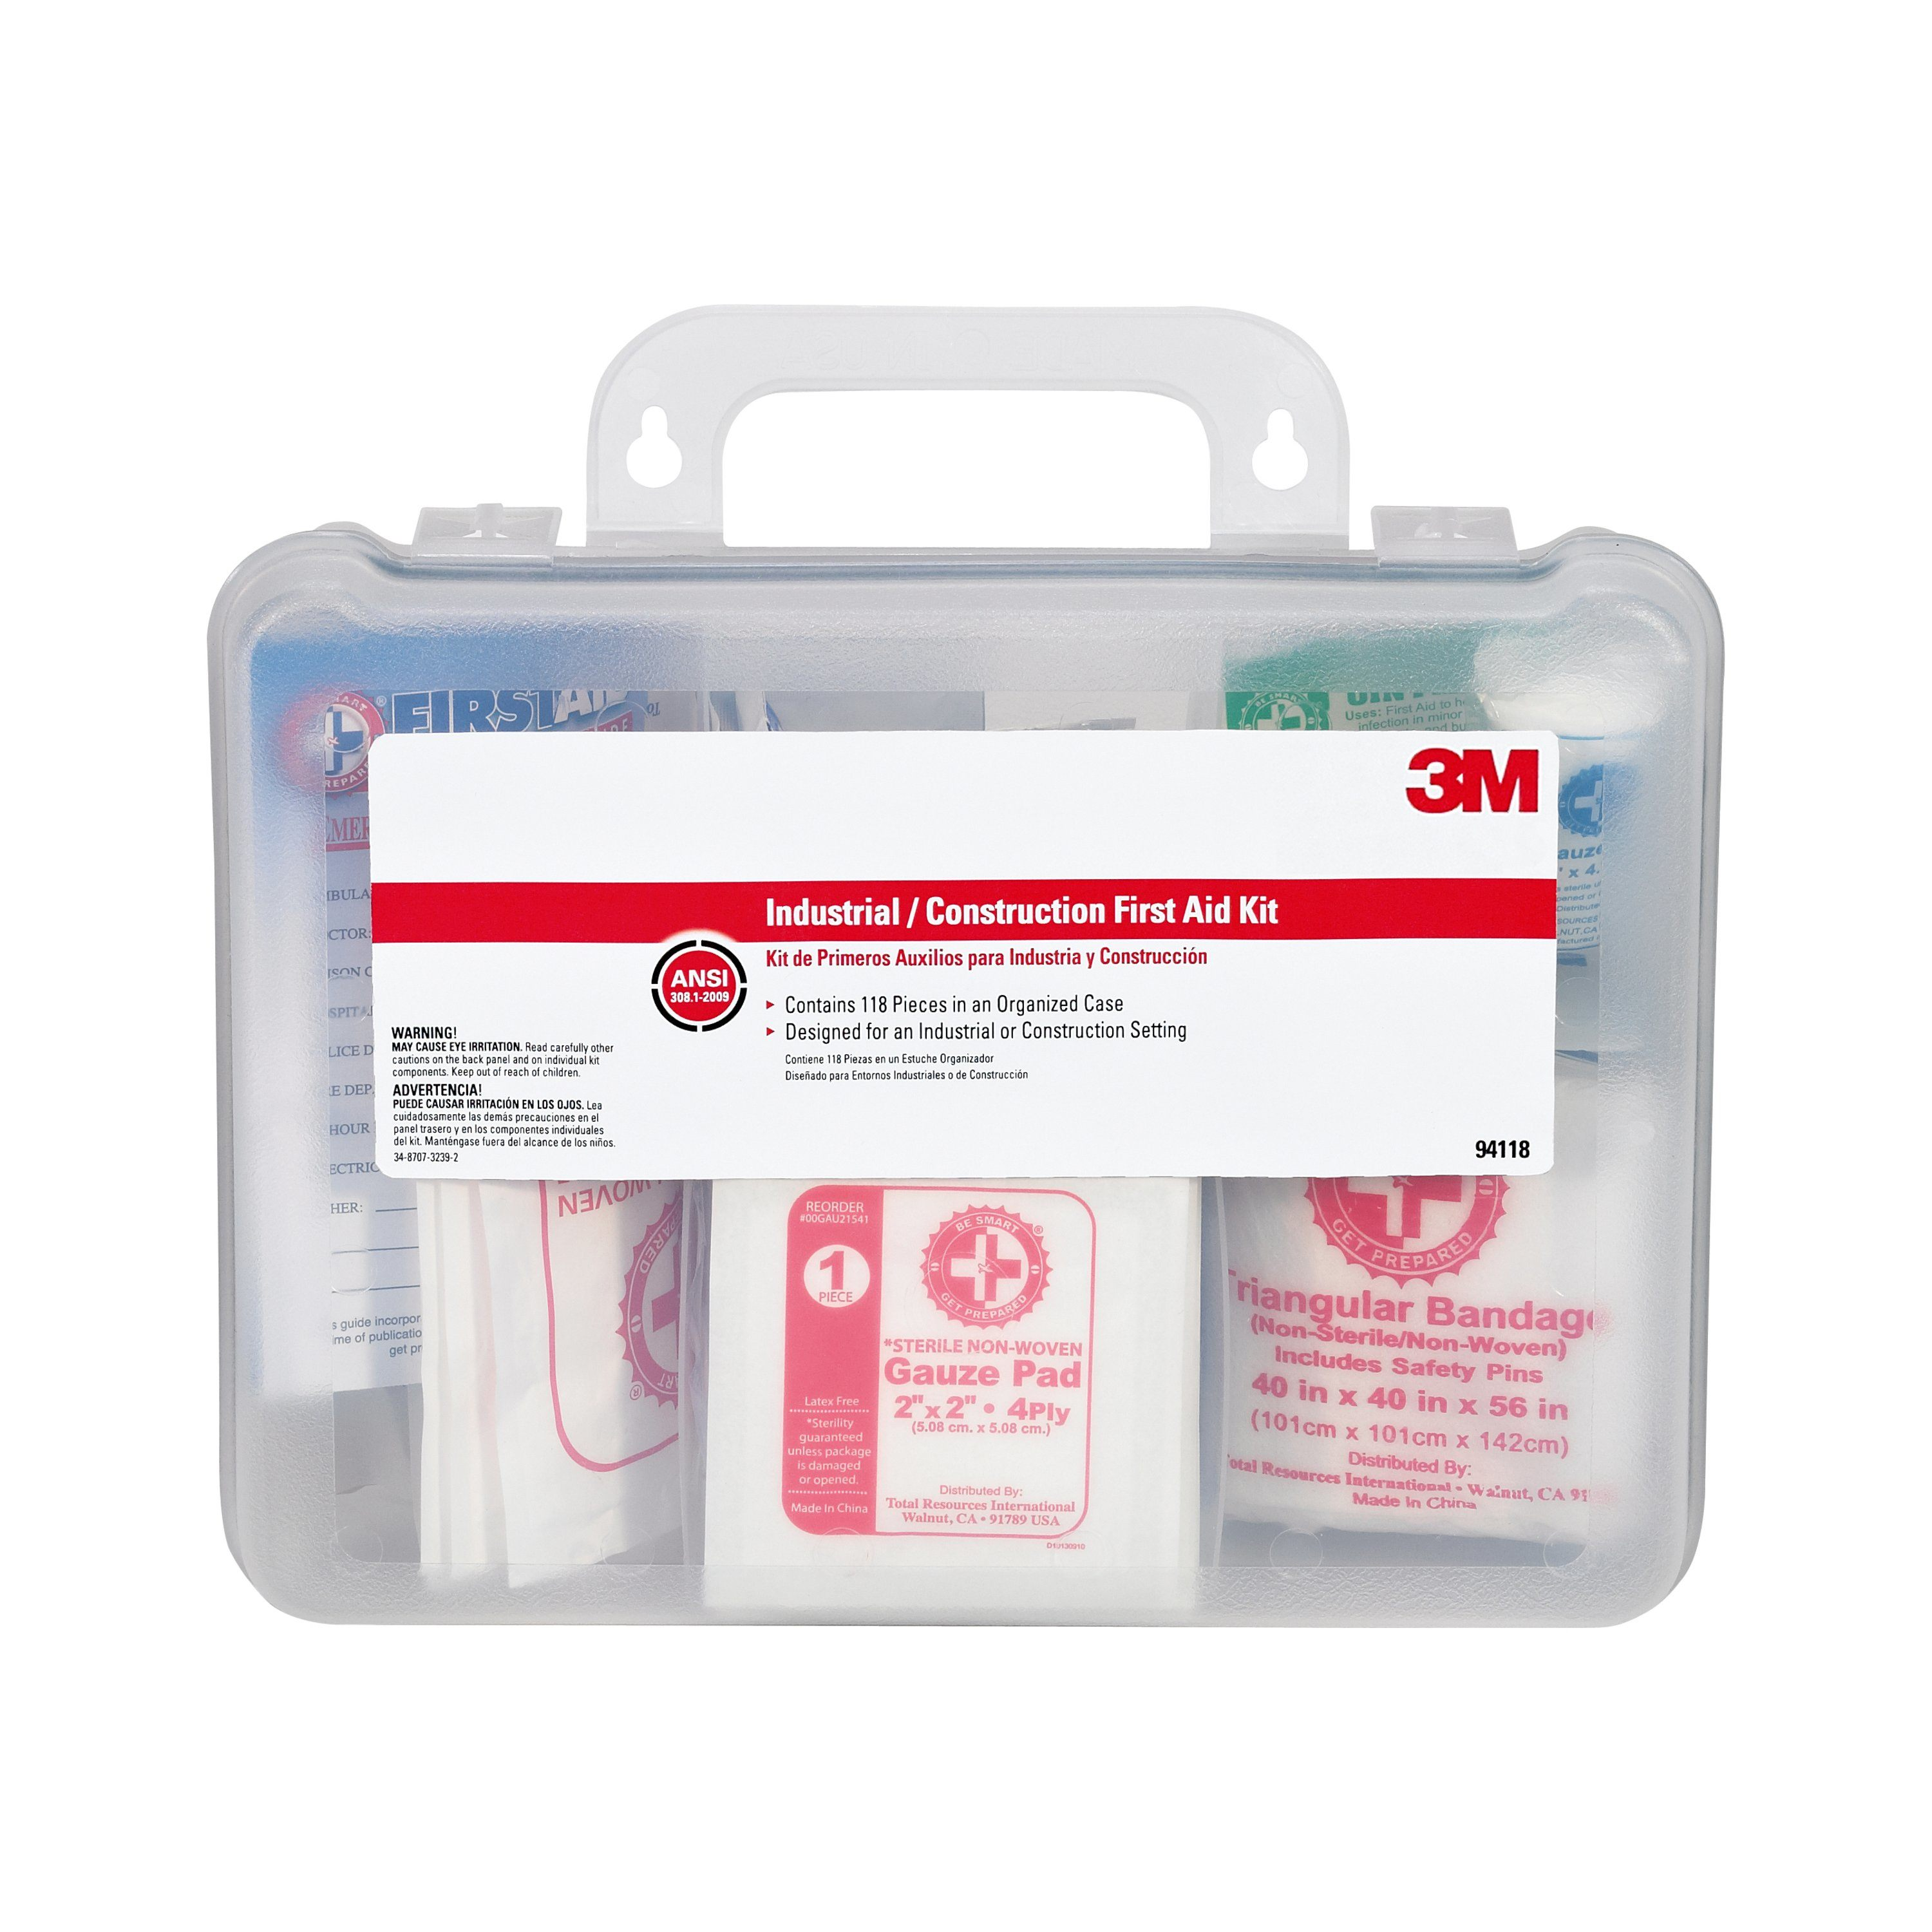 3M Industrical/Construction First Aid Kit, 118 Pieces, OSHA & ANSI Compliant